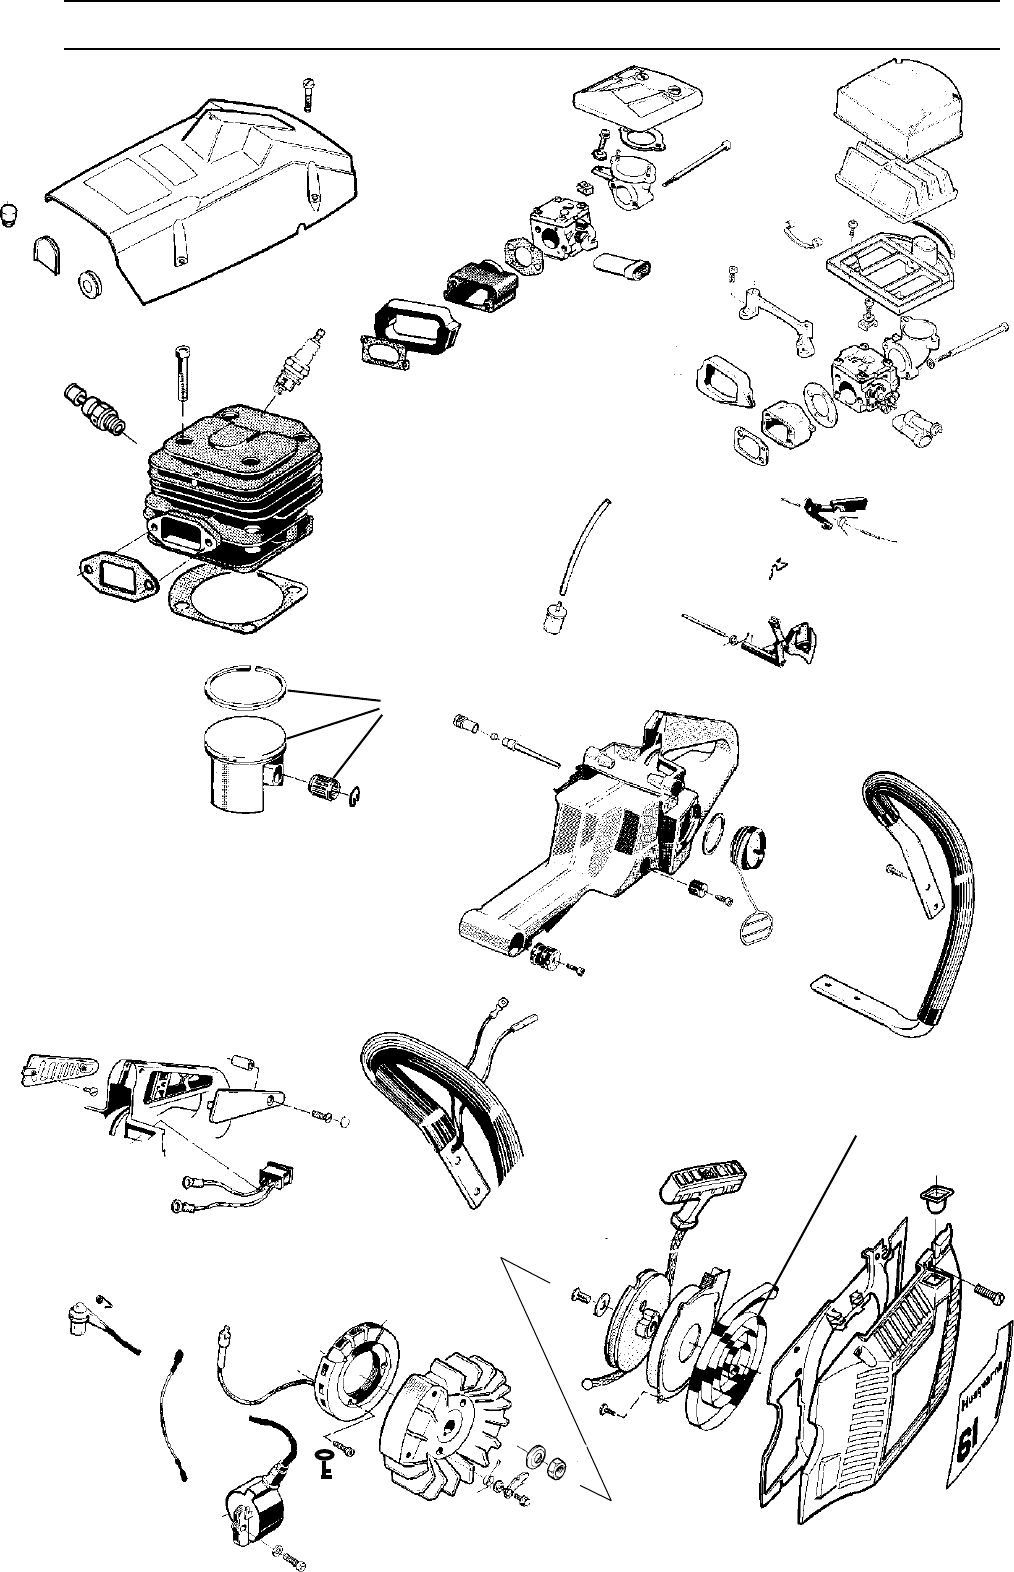 Page 33 of Husqvarna Chainsaw 1018855-26 User Guide